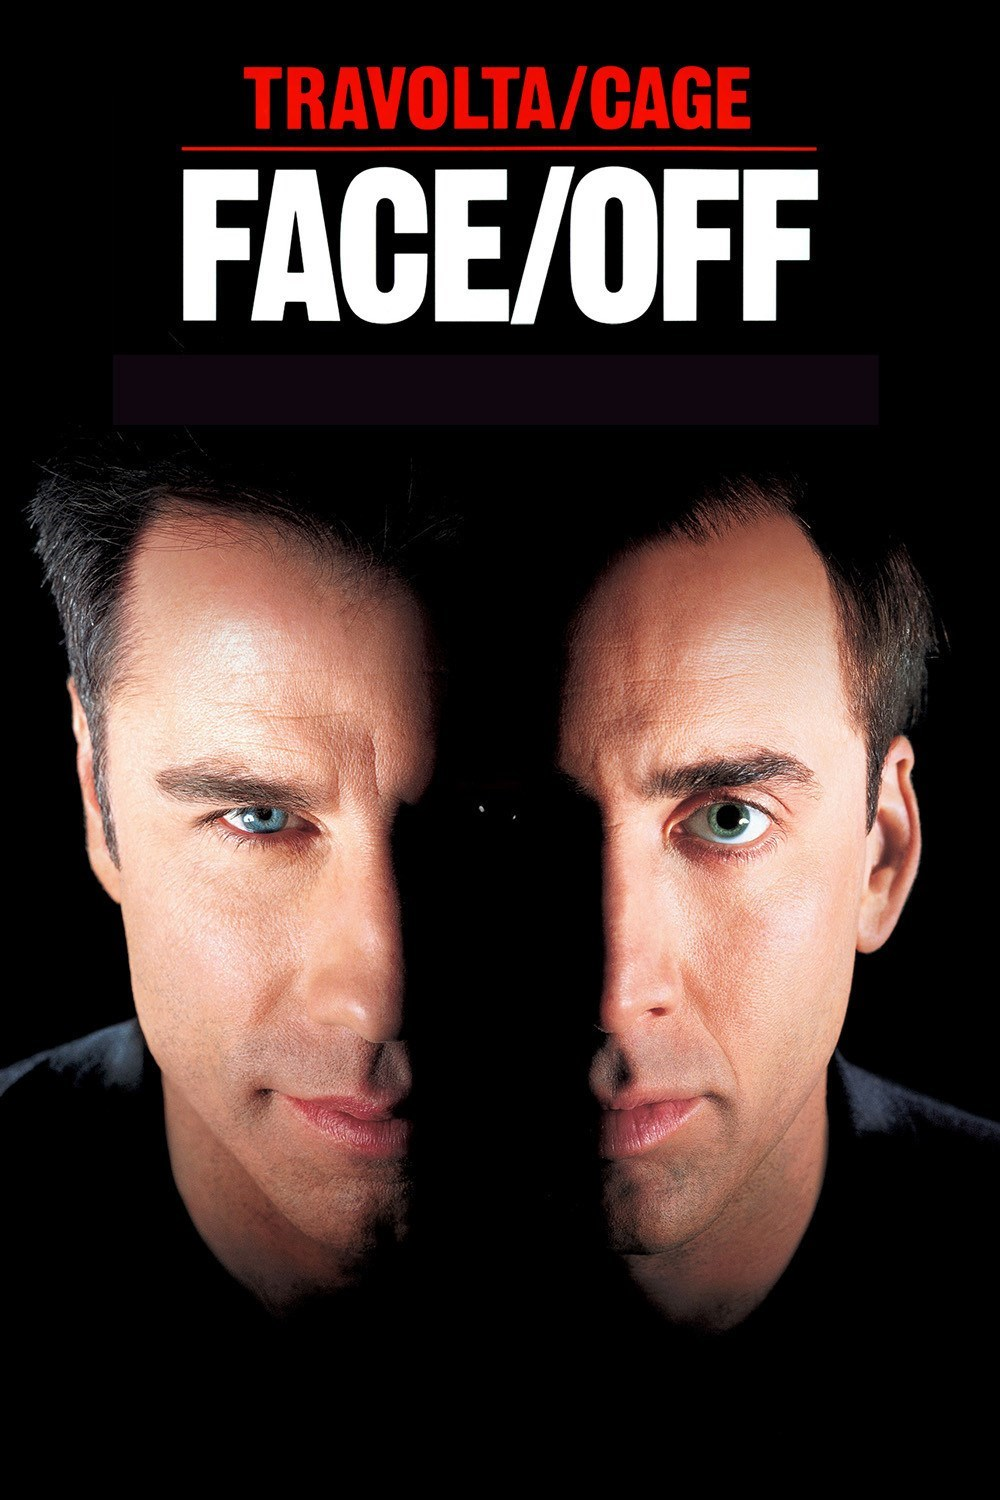 faceoff-face-off.457.jpg